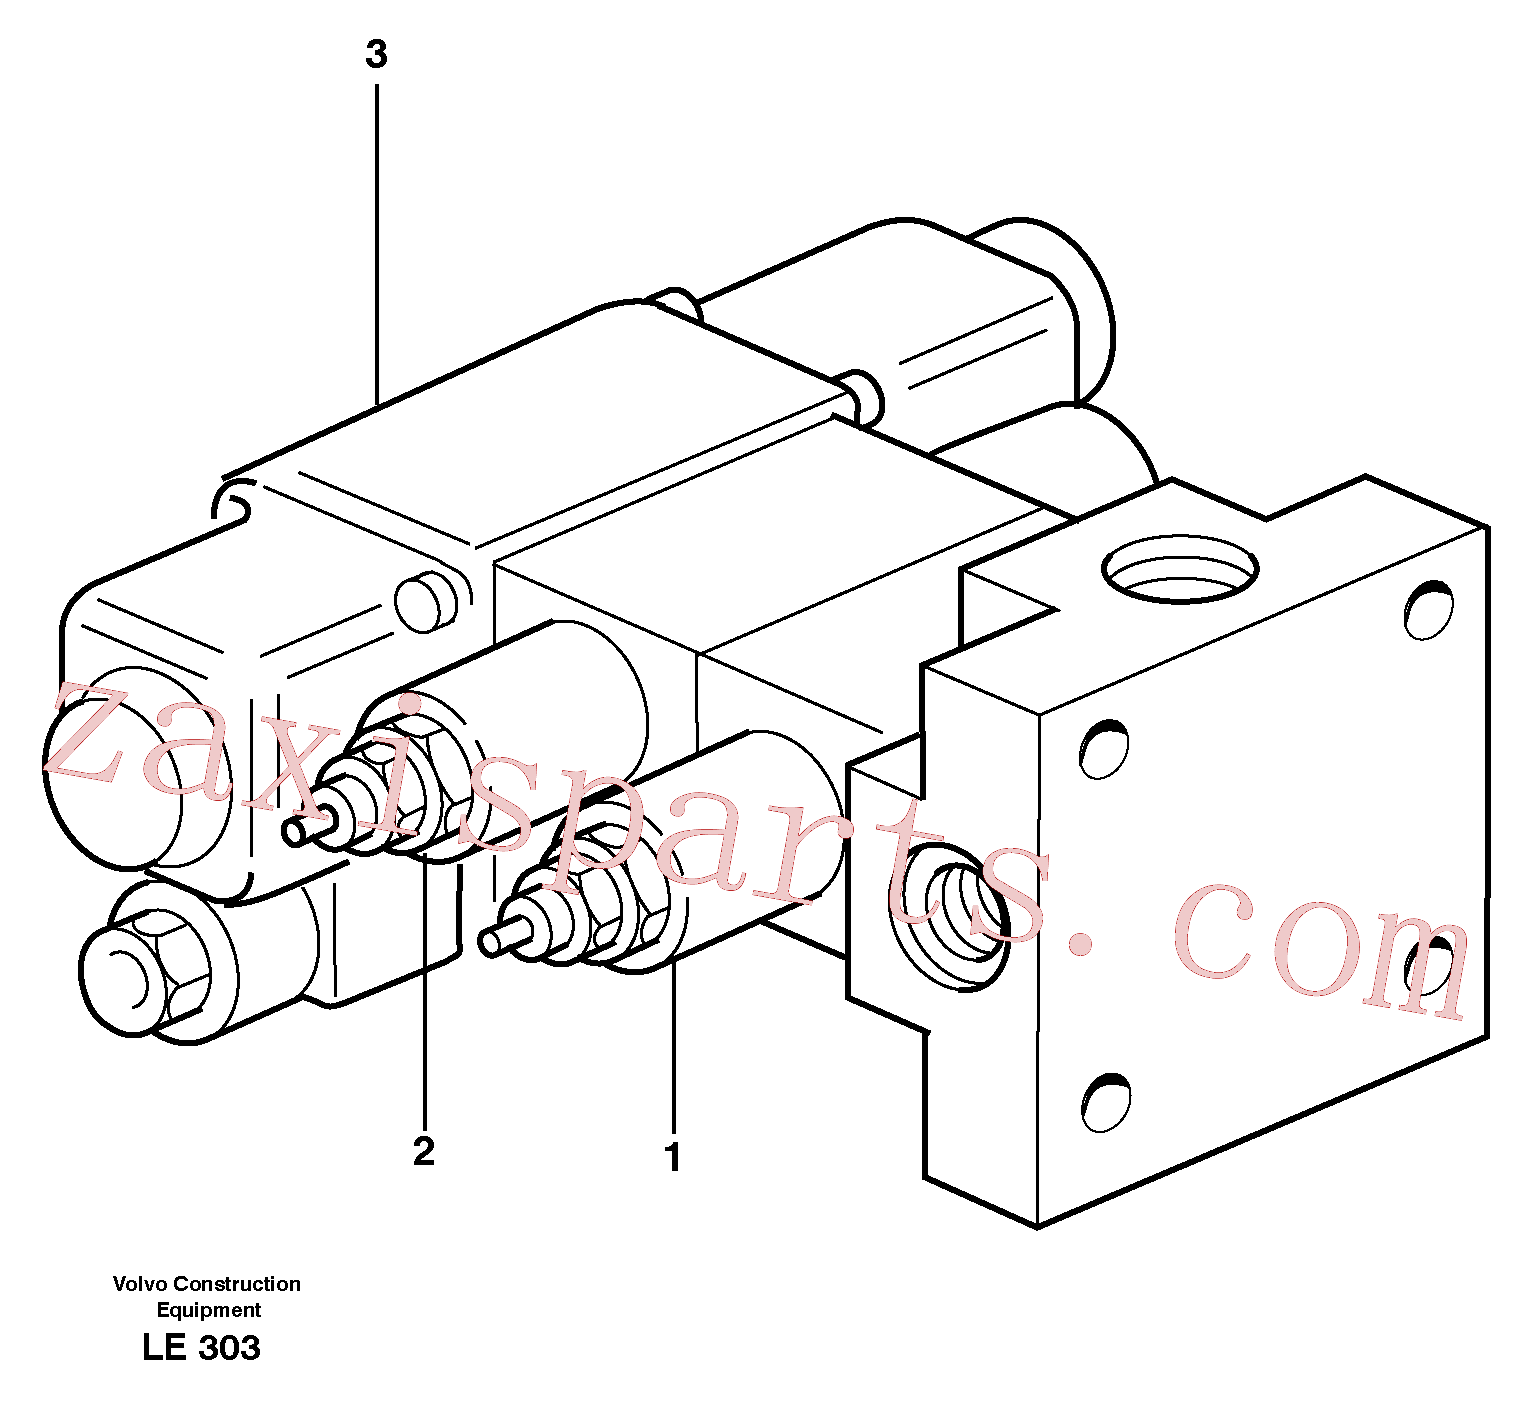 VOE11706623 for Volvo Magnet valve(LE303 assembly)